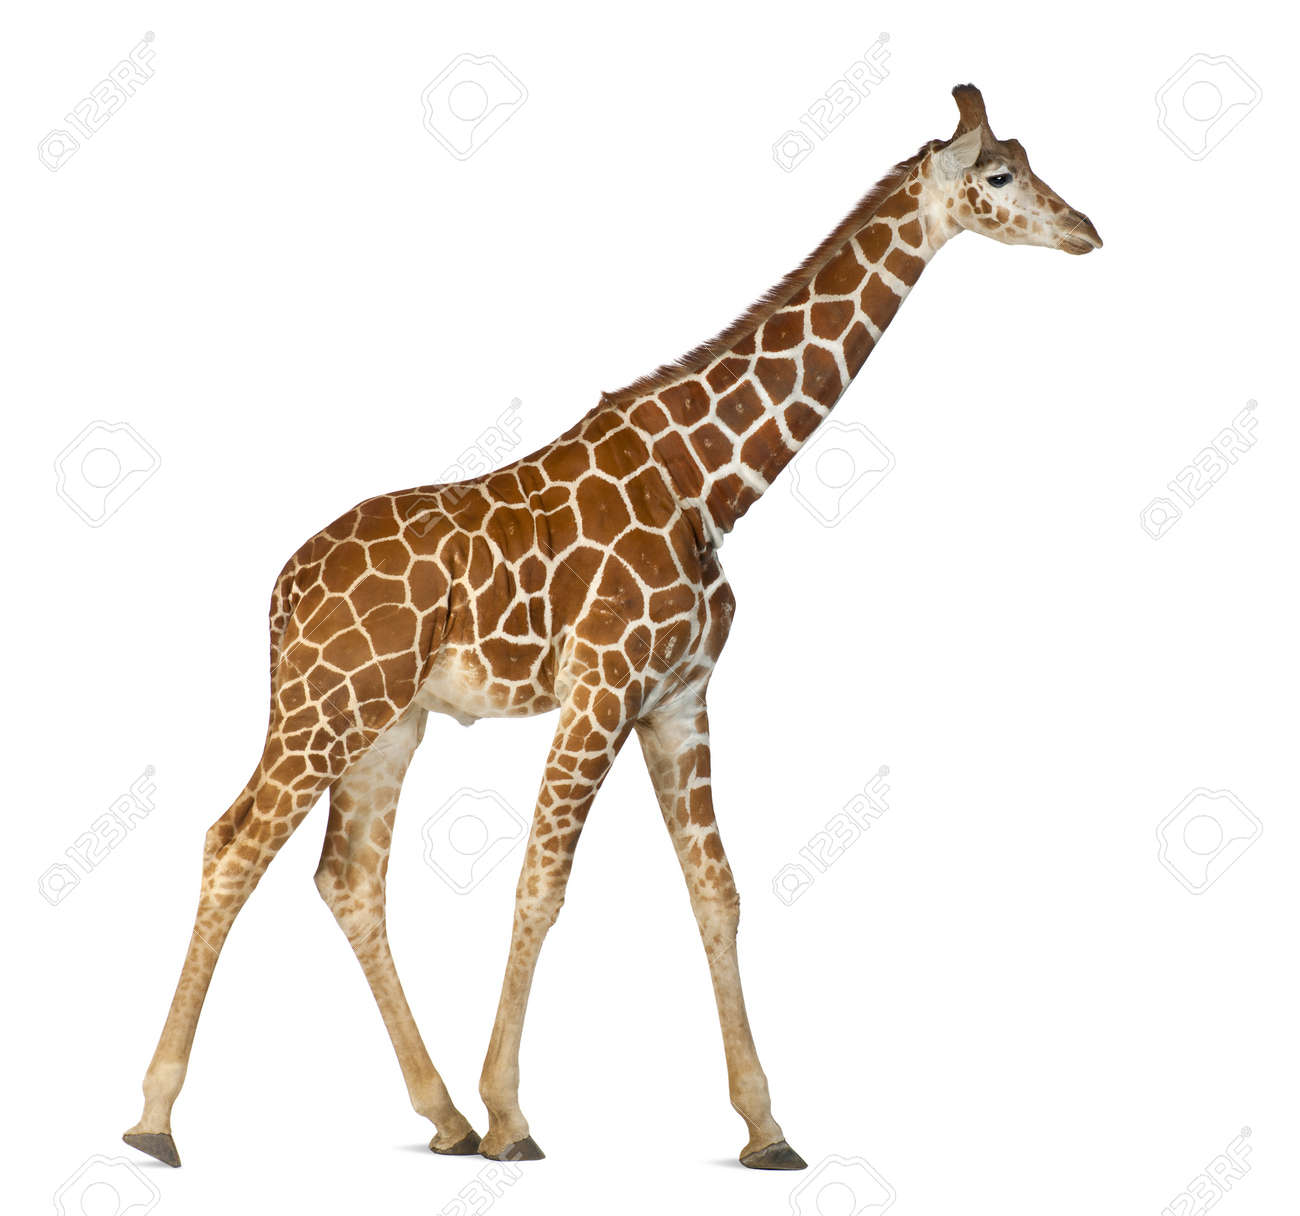 Somali Giraffe, commonly known as Reticulated Giraffe, Giraffa camelopardalis reticulata, 2 and a half years old walking against white background Stock Photo - 15251513